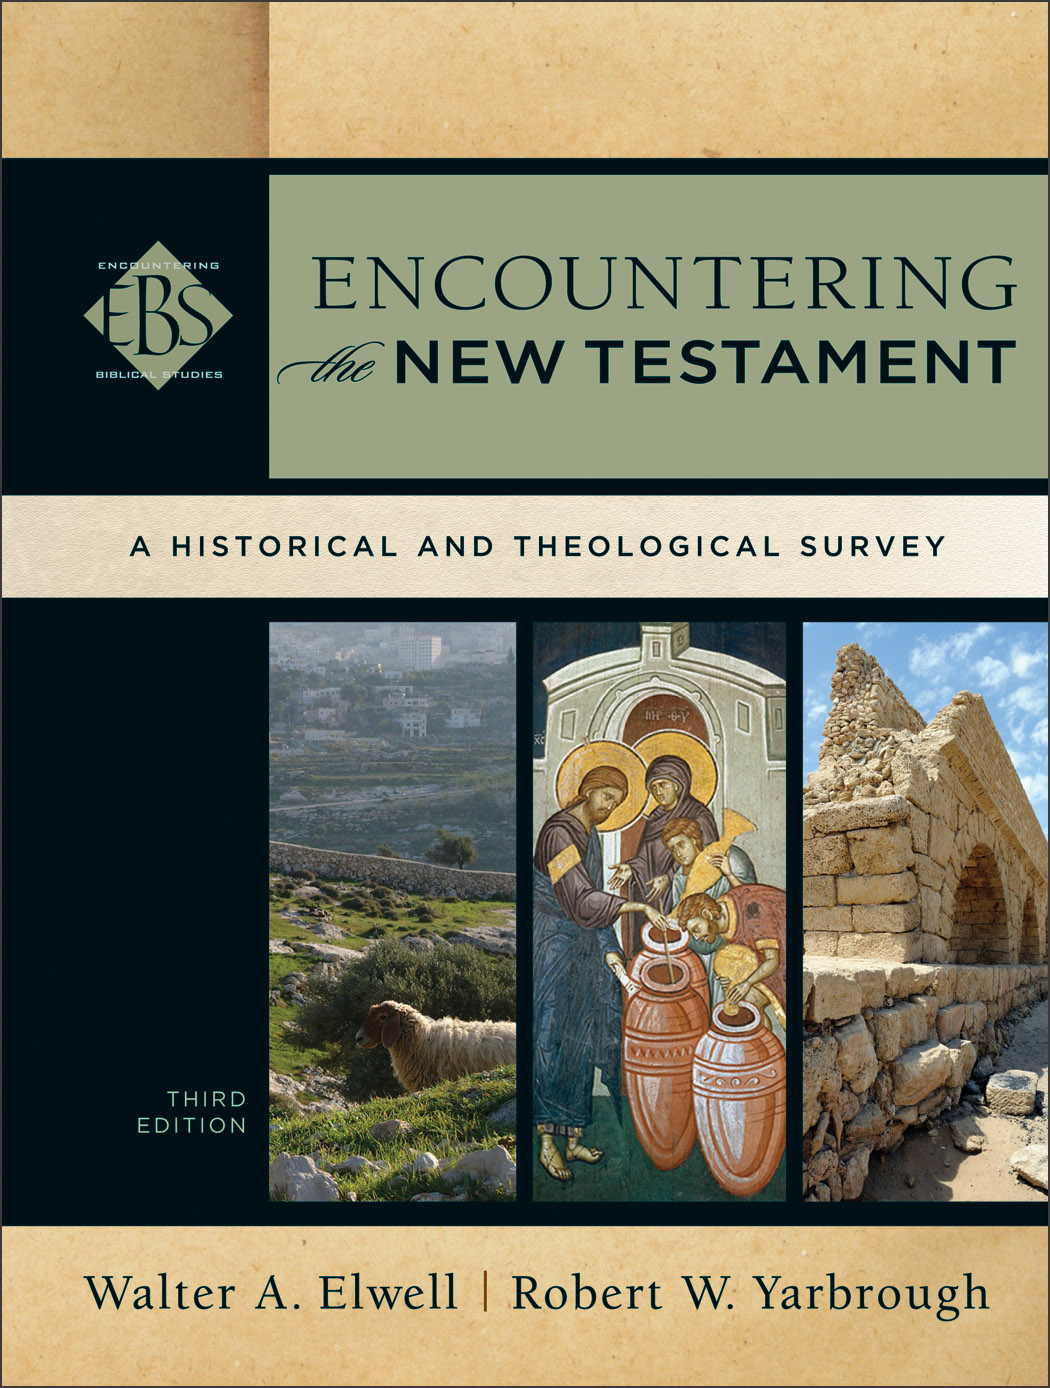 Encountering the New Testament () By: Robert W. Yarbrough,Walter A. Elwell